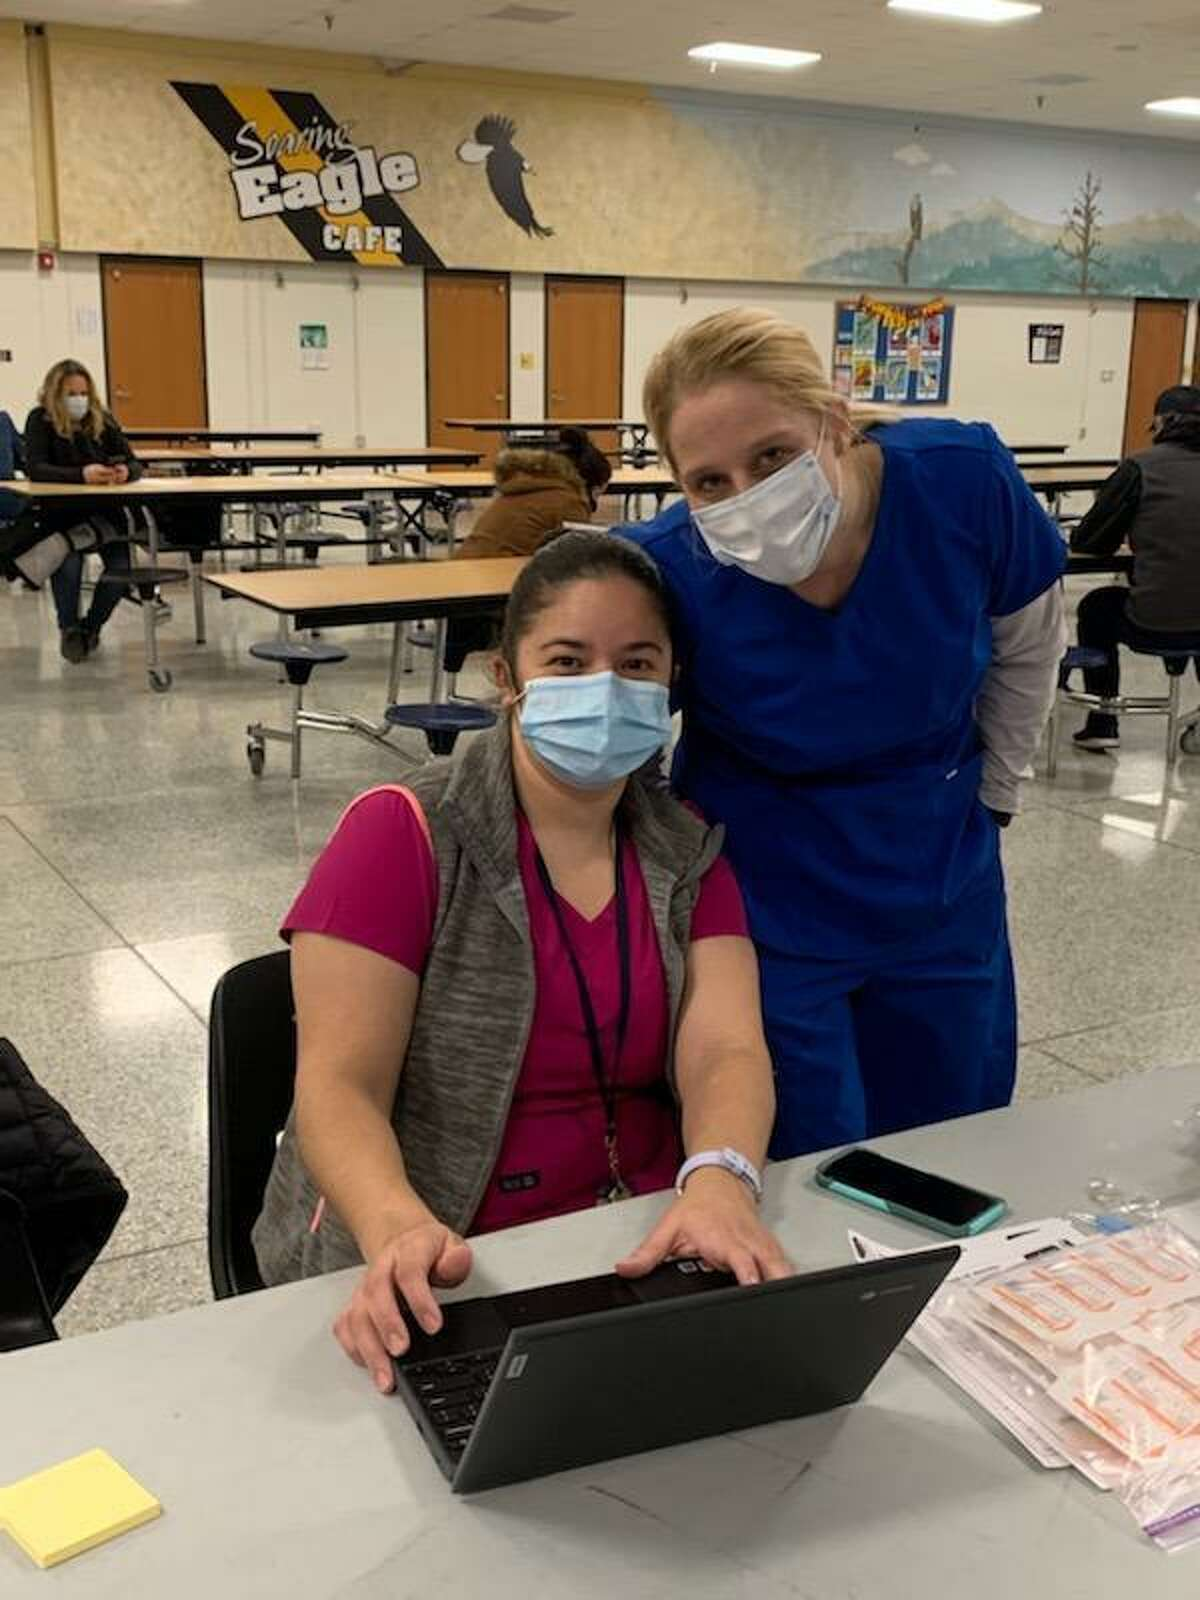 Trumbull is stepping up its COVID-19 vaccination rate as more volunteers receive certifications to administer vaccines, and more doses become available.